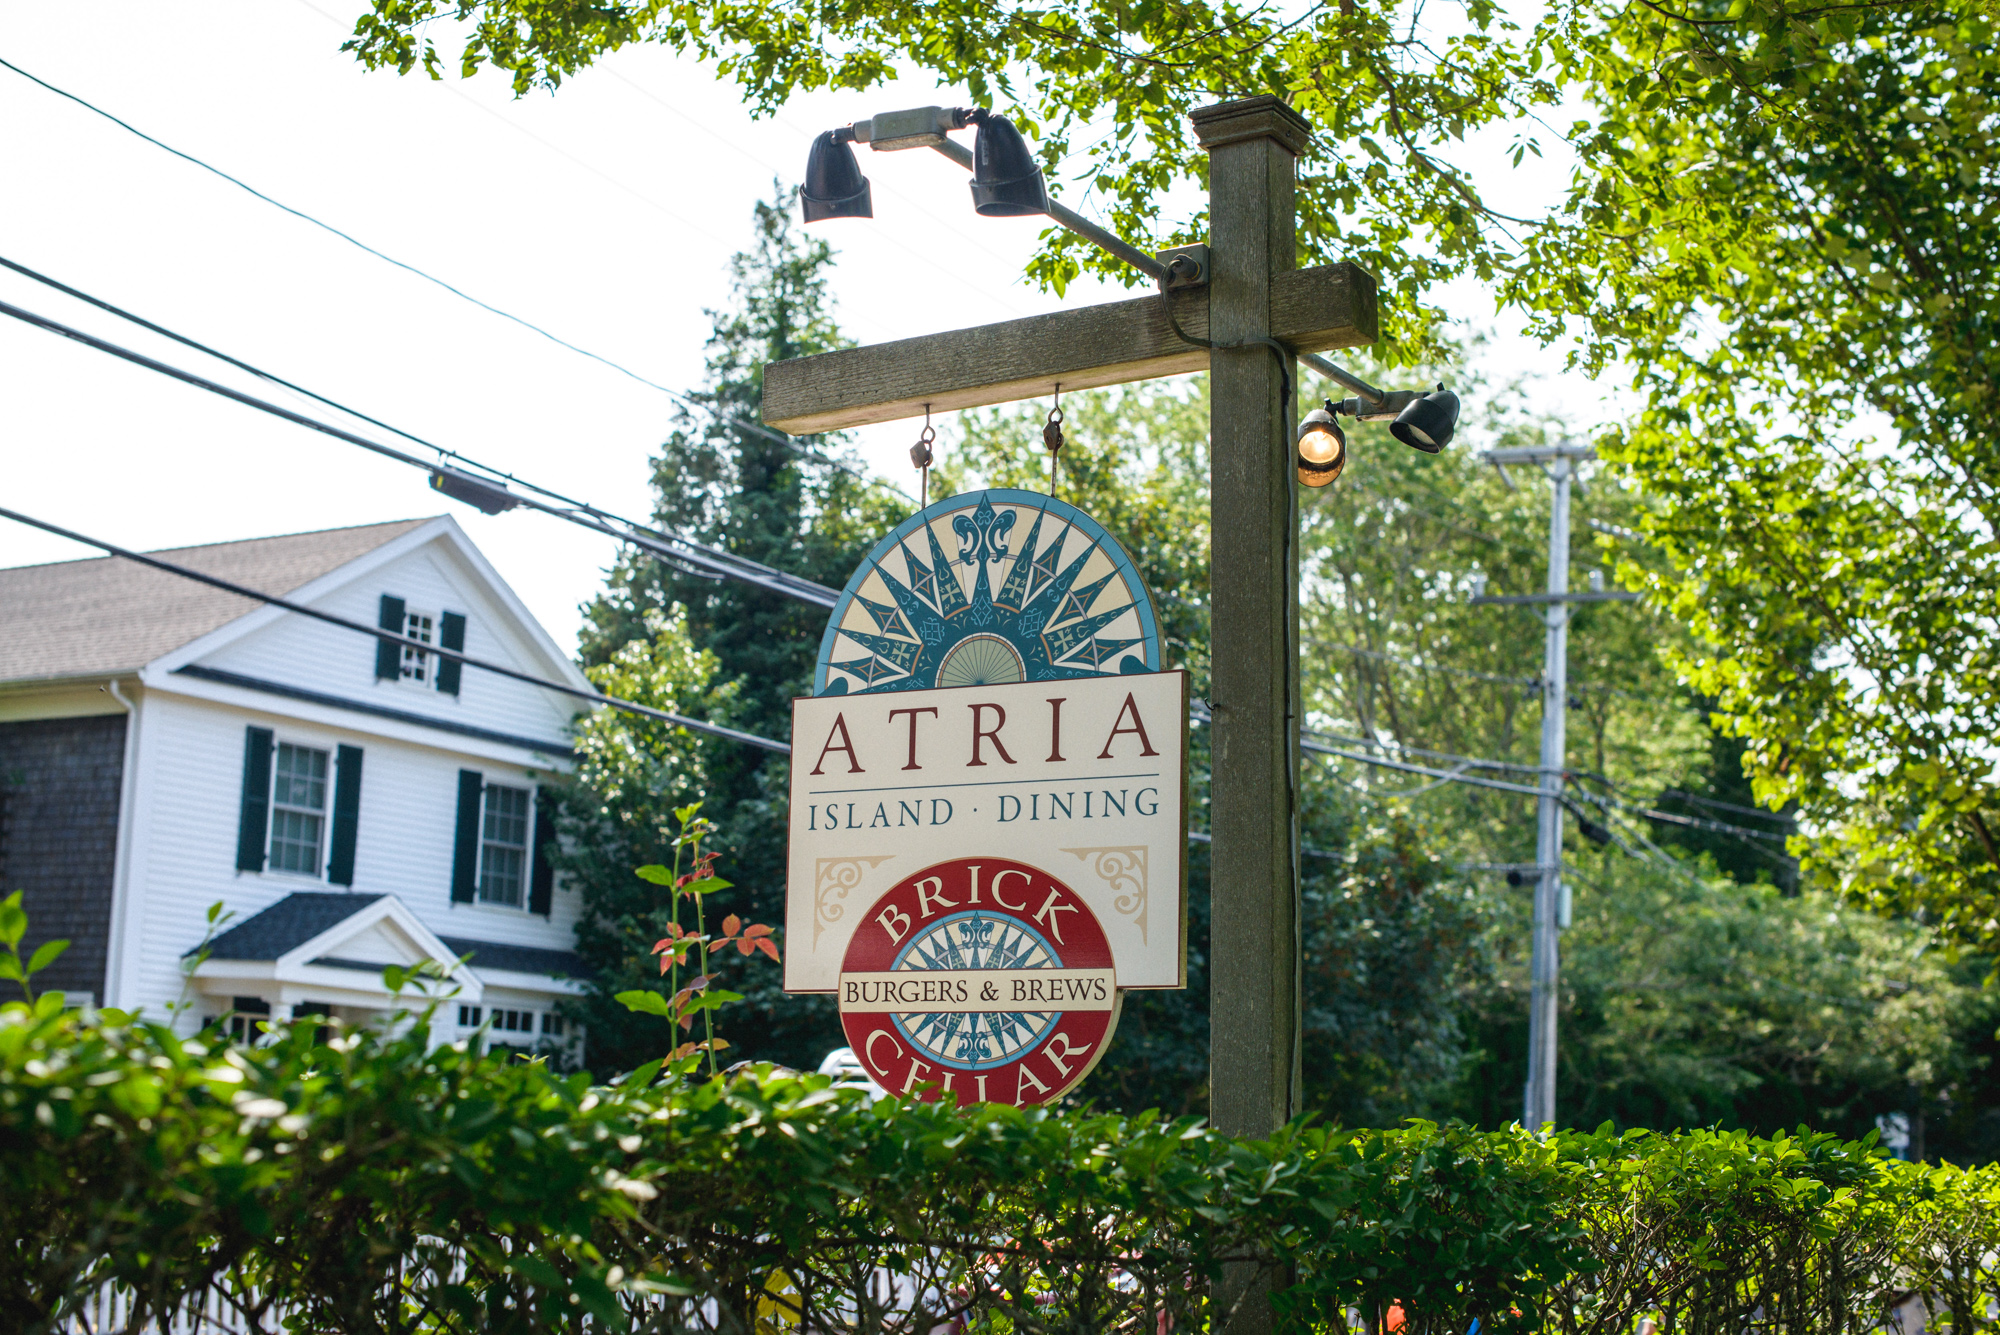 The sign  at Atria Restaurant and Brick Cellar Bar in Edgartown martha's vineyard wedding venues photo by David Welch Photography